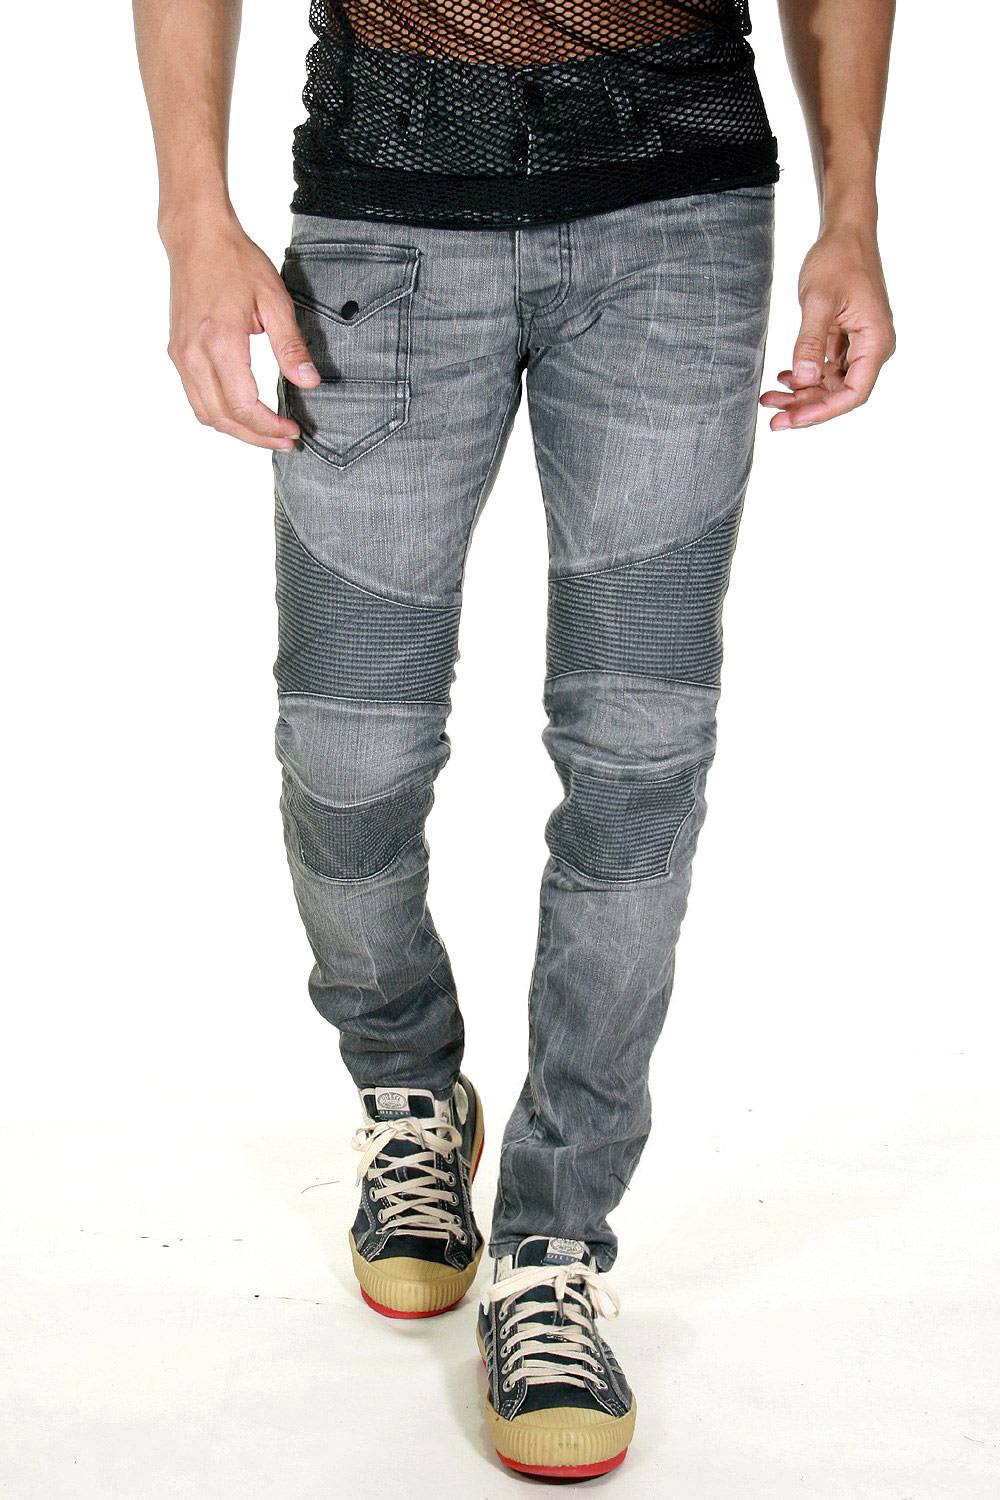 KAPORAL jeans at oboy.com